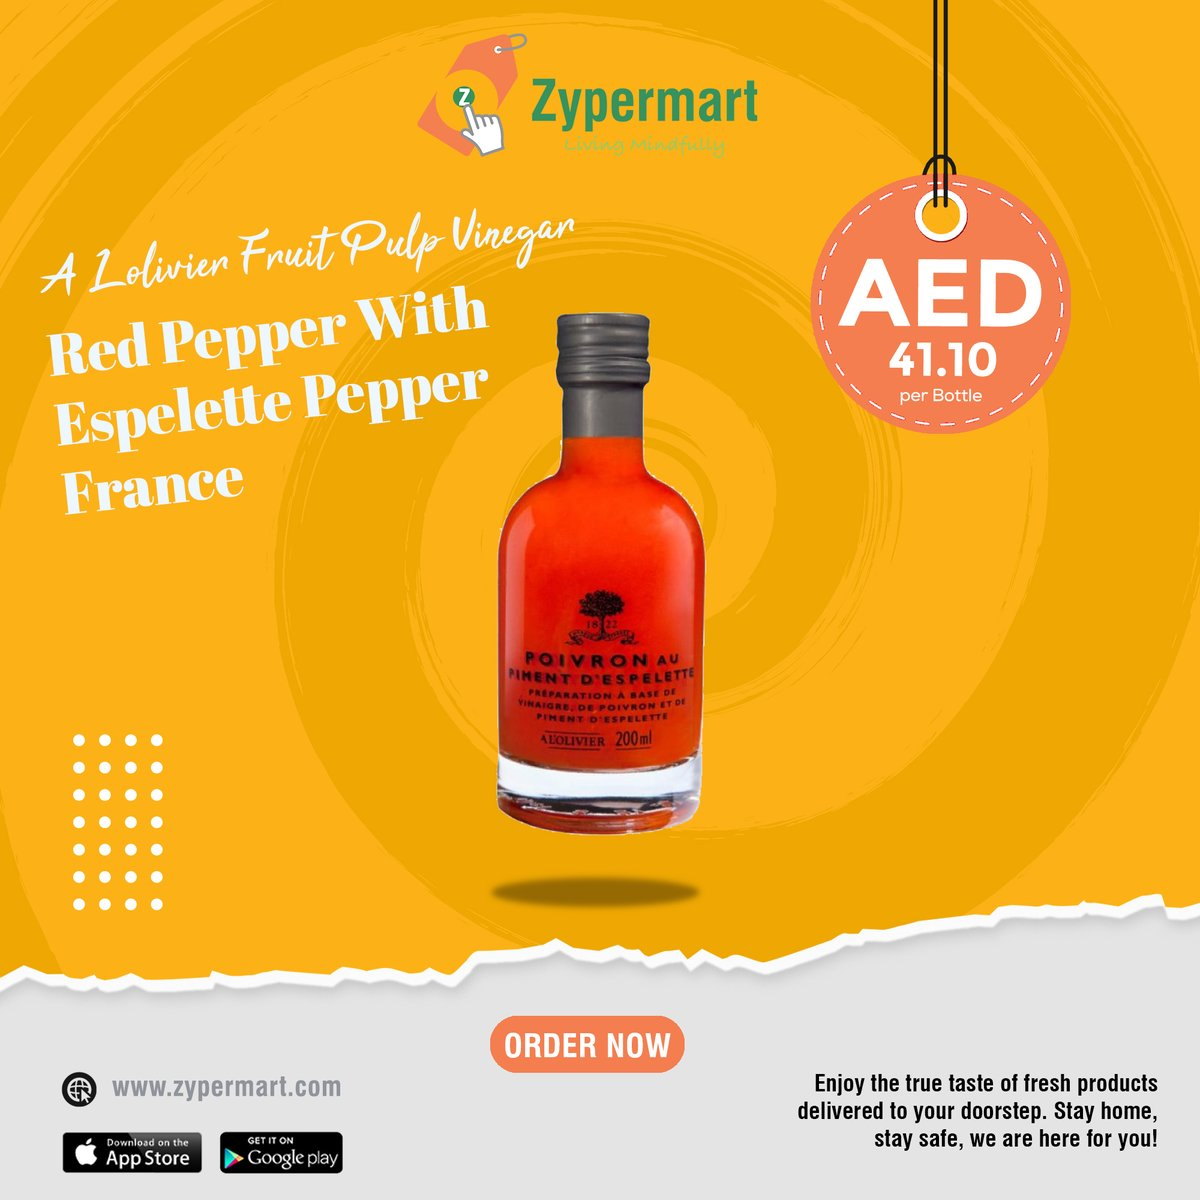 The finest vinegar with red pepper from France can only be found at  #fruits #vegetables #meat #chicken #seafood #nuts #dryfruits #grocery #gourmet #organic #dairy #fresh #onlinemarket #market #groceries #grocery #onlinegrocery #oliveoil #beef #organicfood